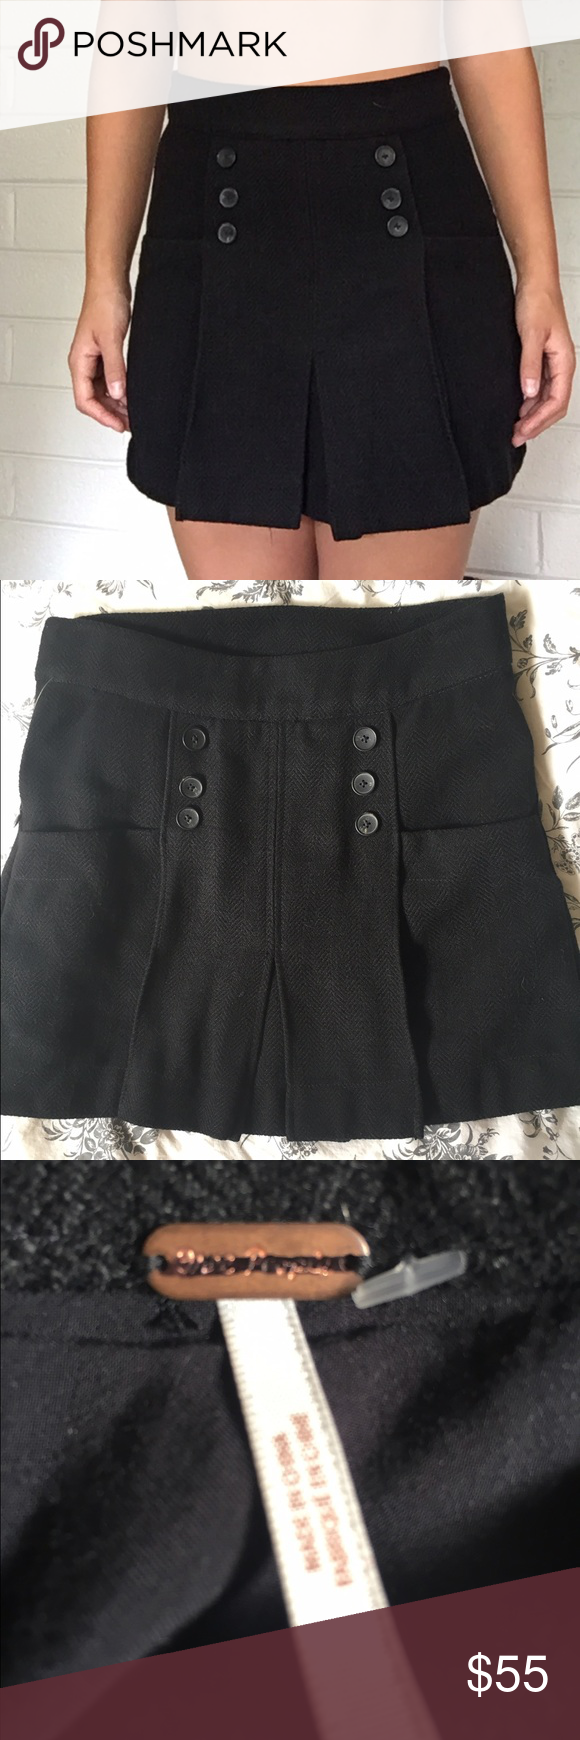 Free people skirt Never been worn  No tags  10% discount when you buy 2 or more items.   Offers welcome  No Trades Free People Skirts Mini